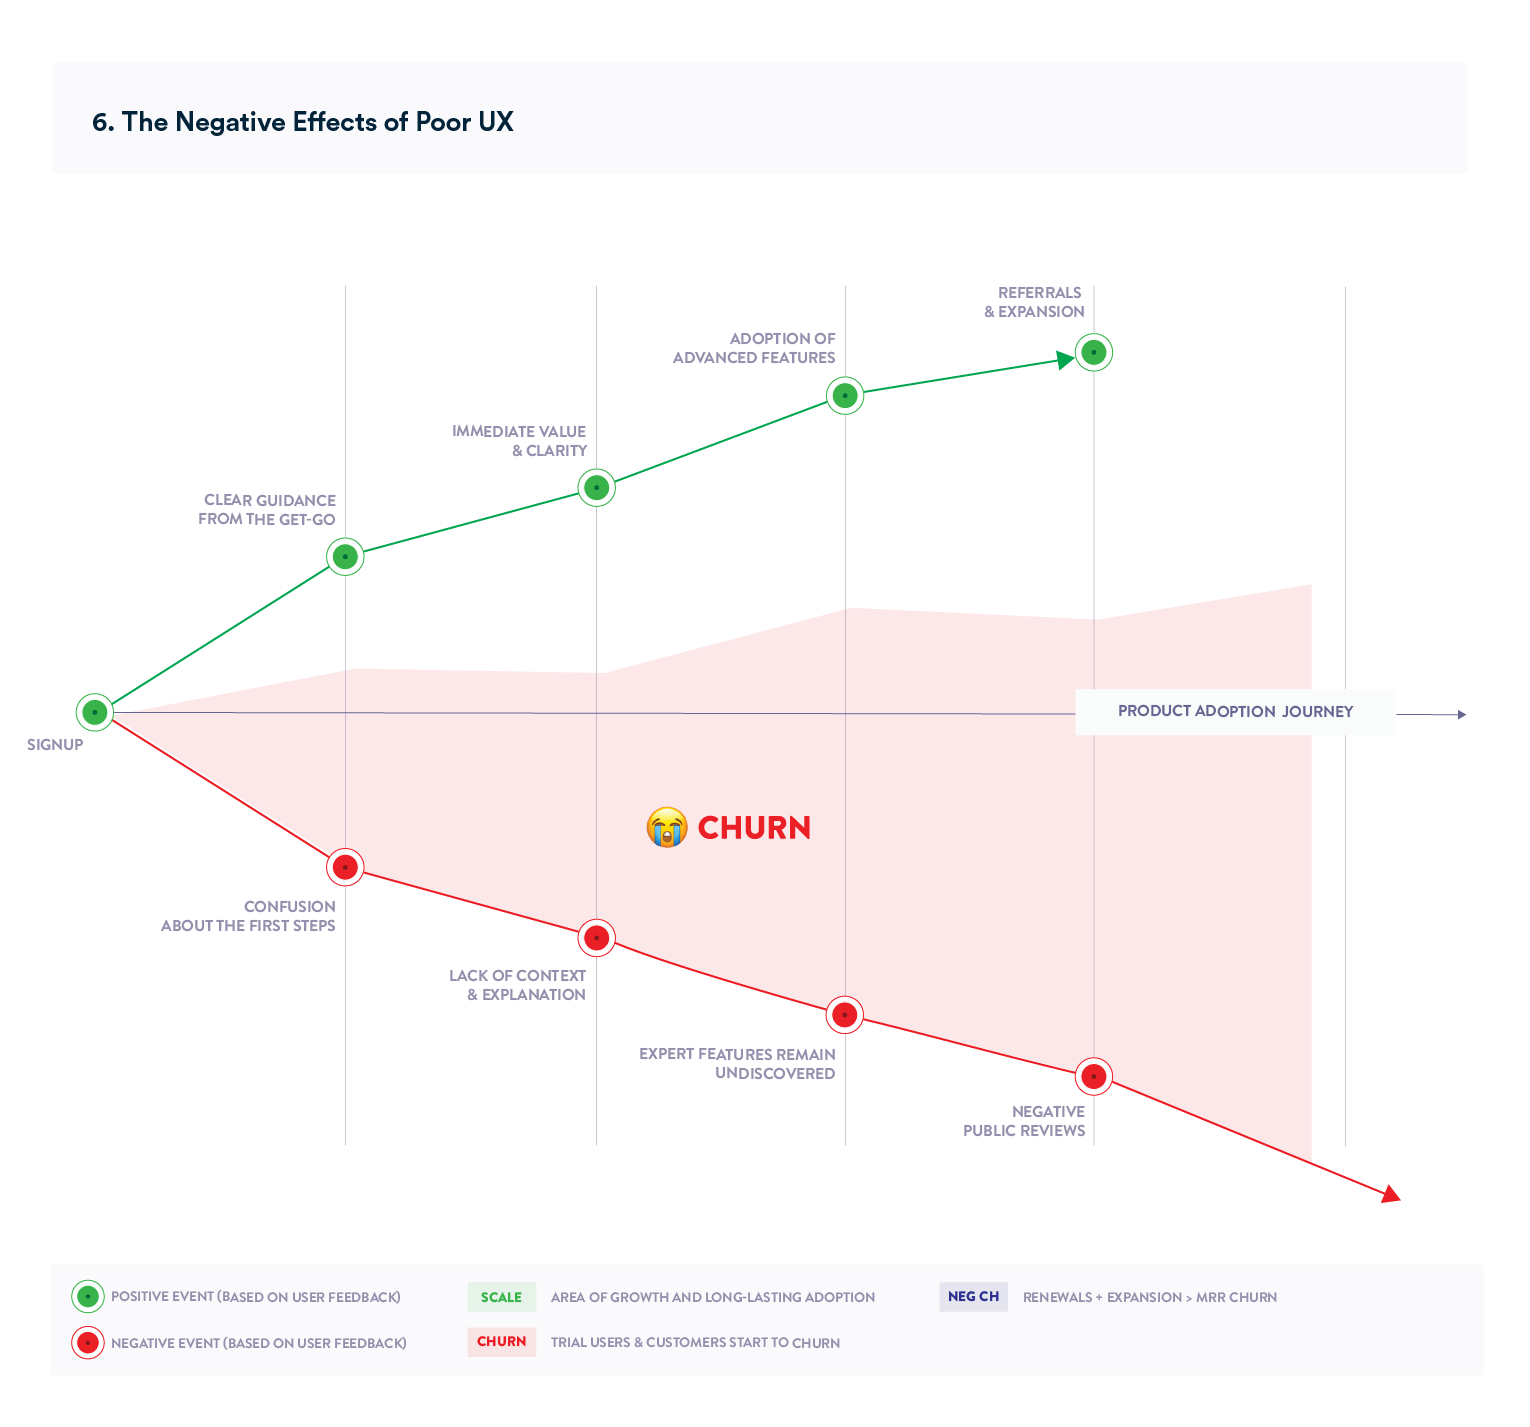 Chart depicting the negative effects of poor user experience on product adoption